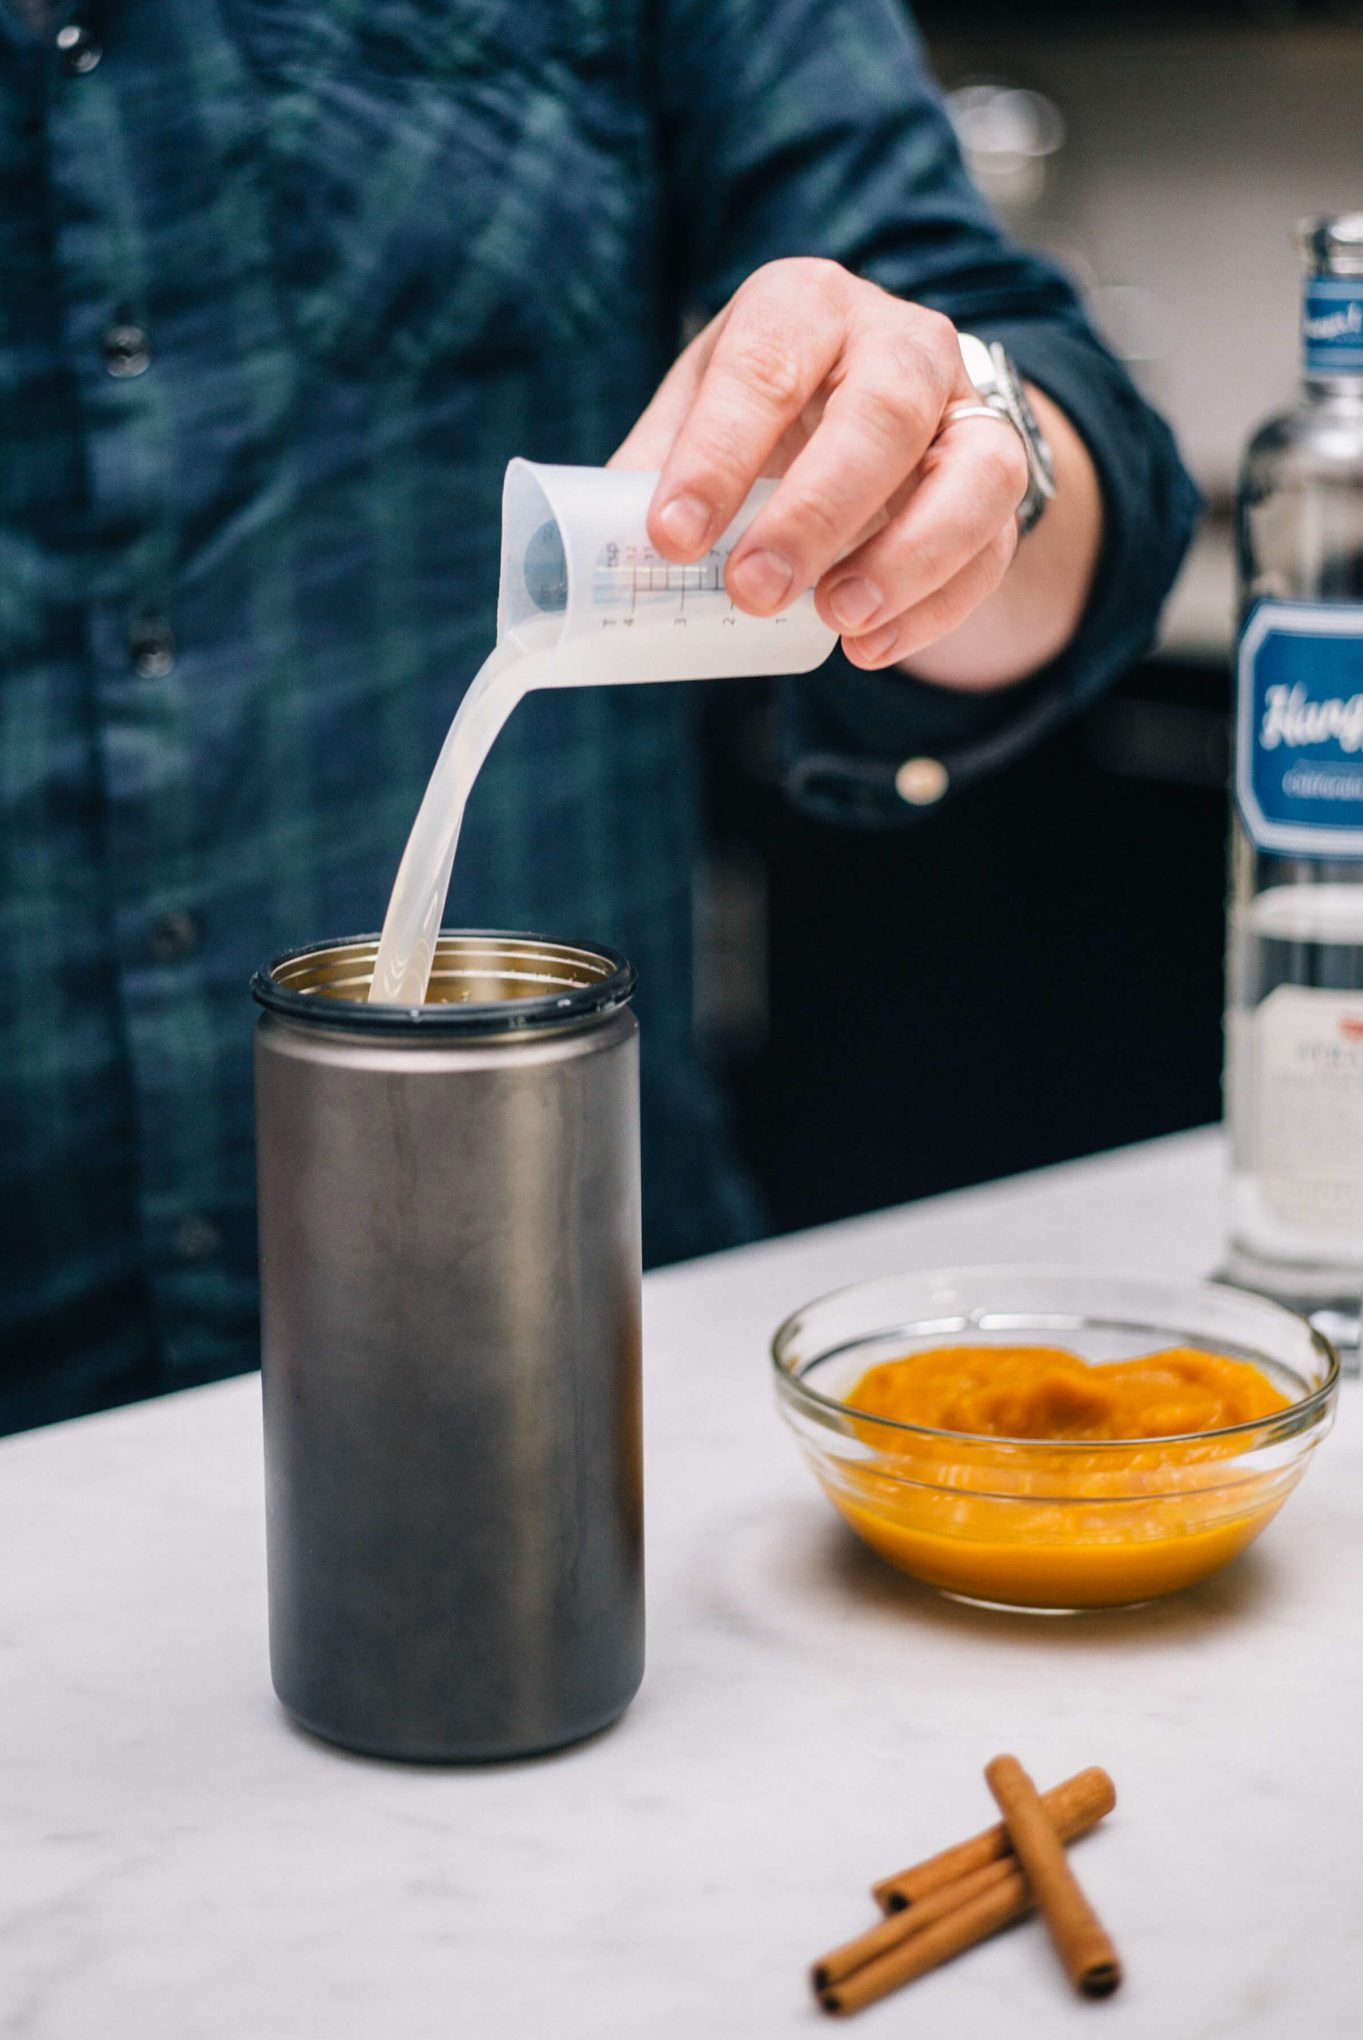 The Taste SF adds Horchata and Ginger Liquor with Hangar 1 Straight Vodka to makes Pumpkin Spice Cocktails